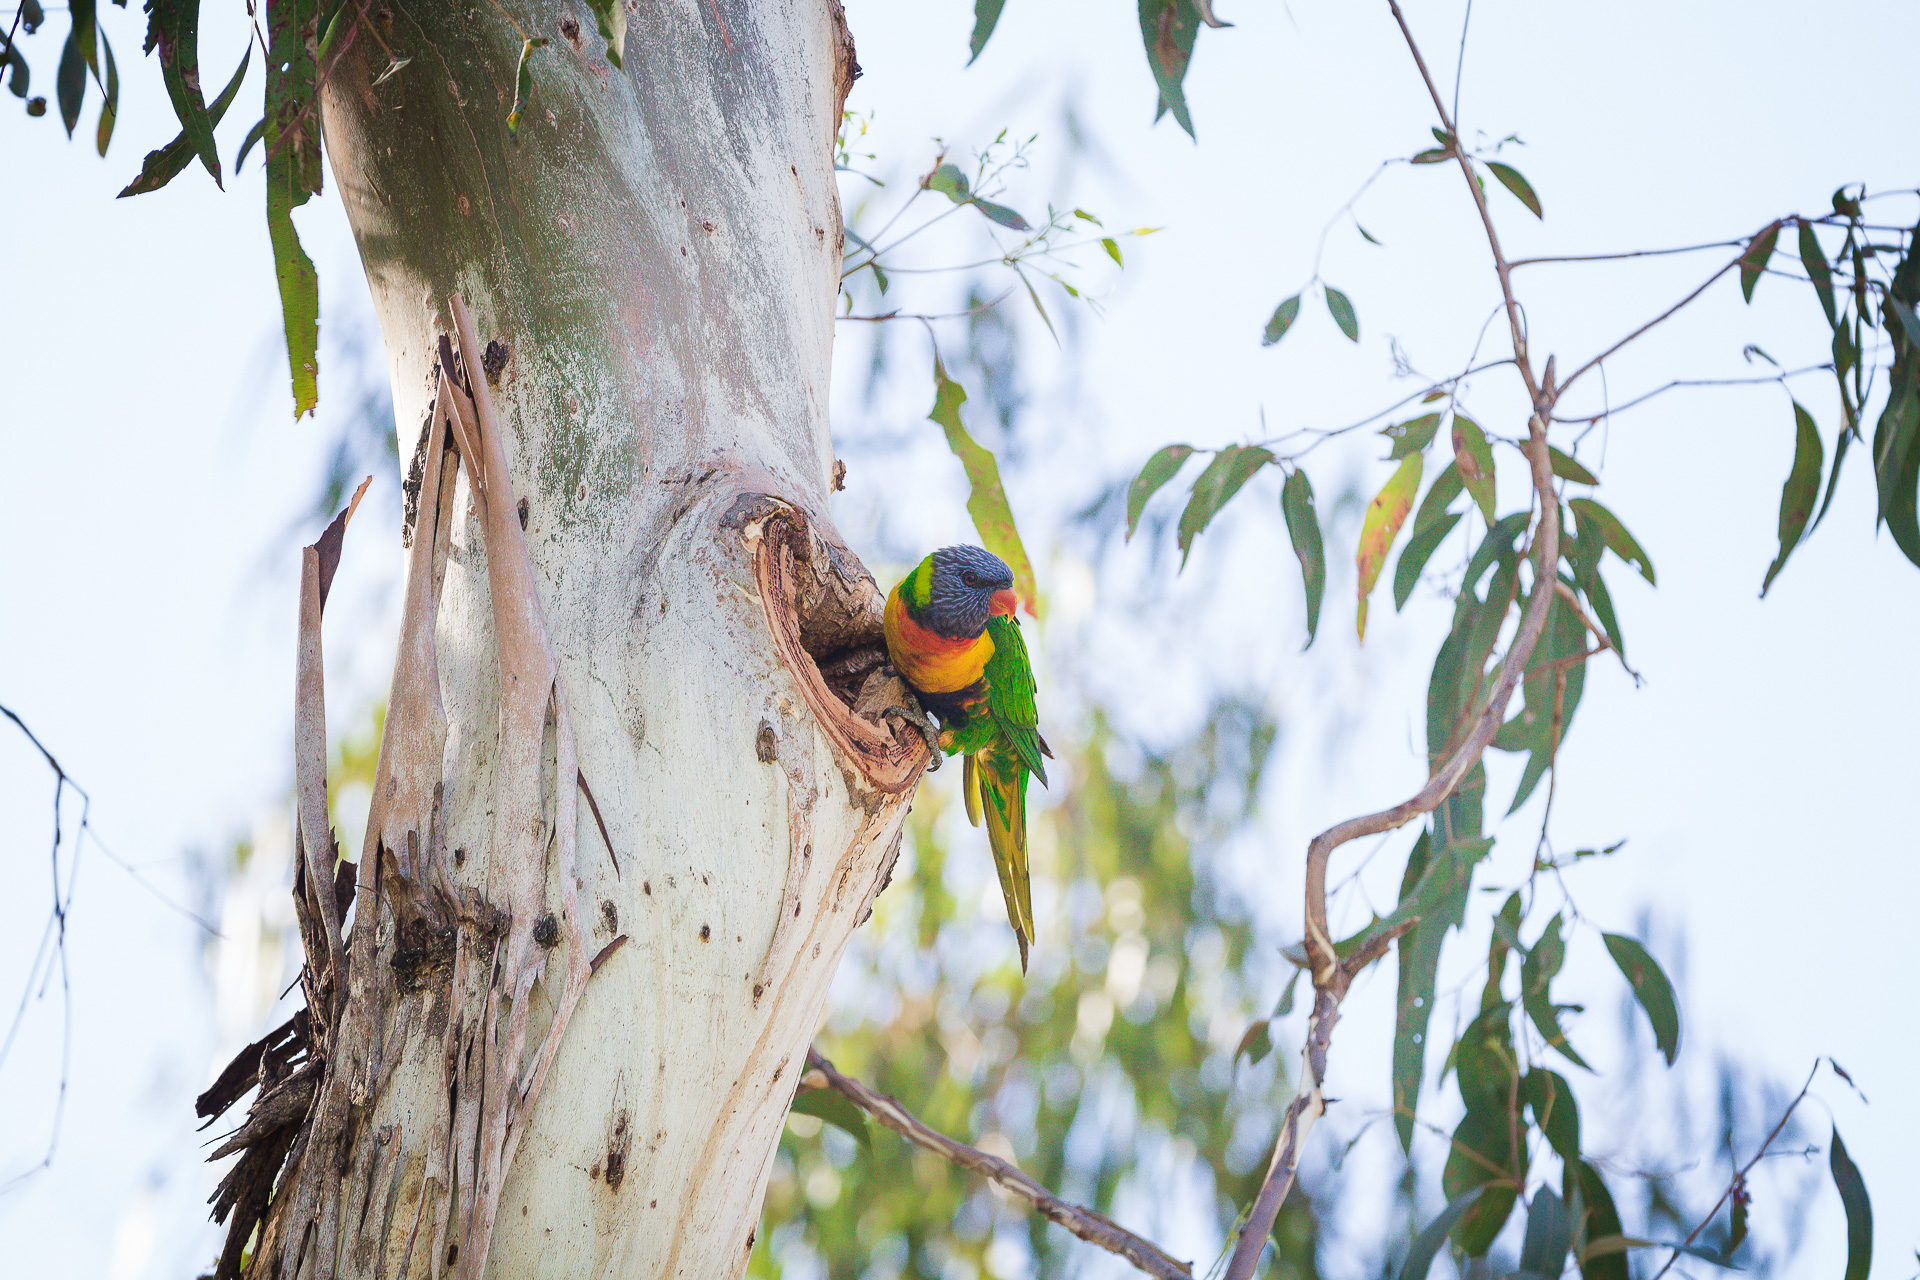 KW - Rainbow Lorikeet